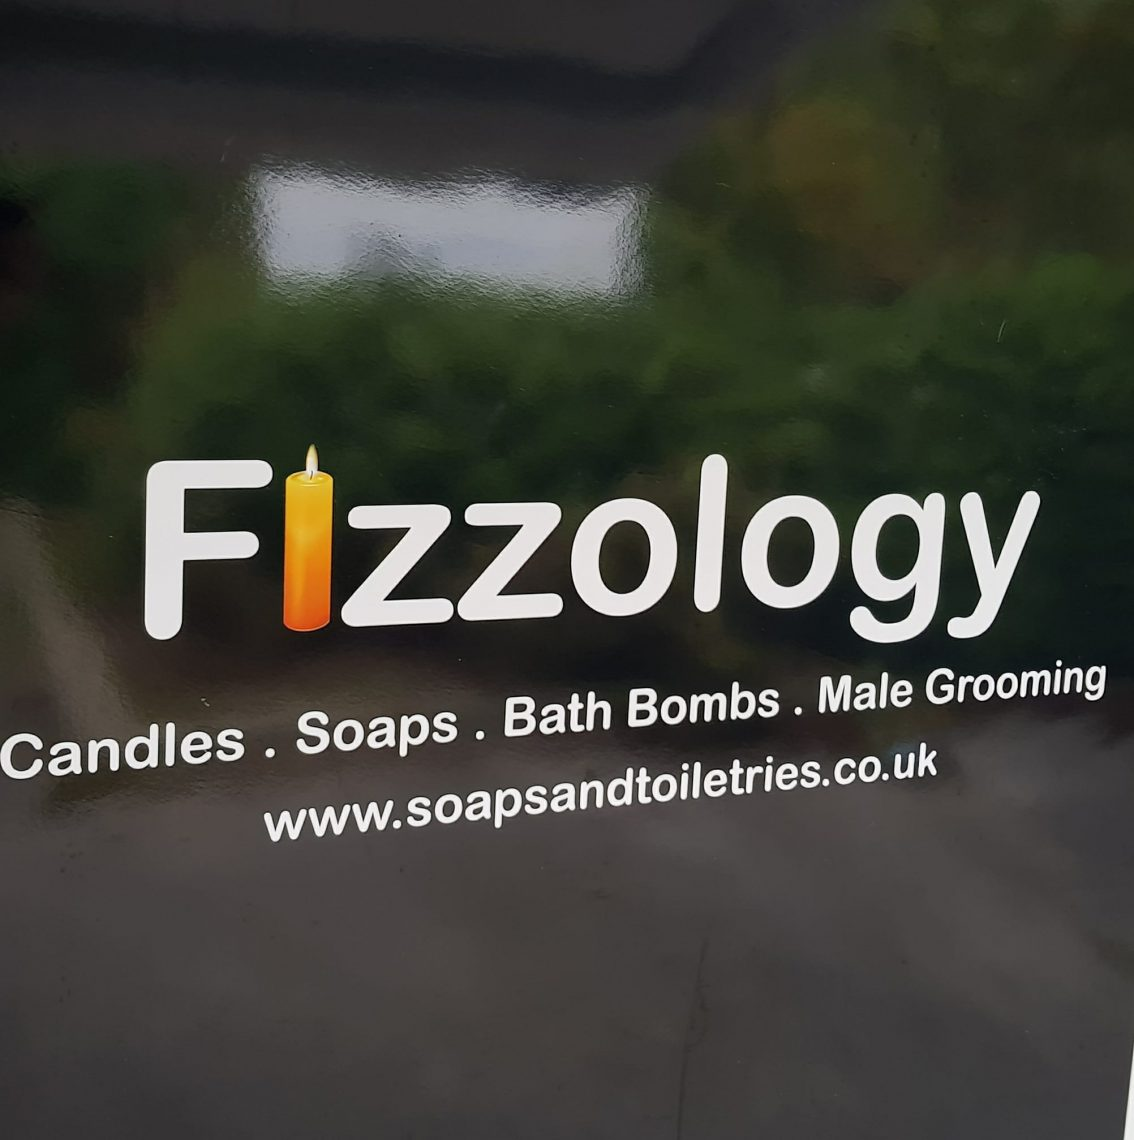 Fizzology